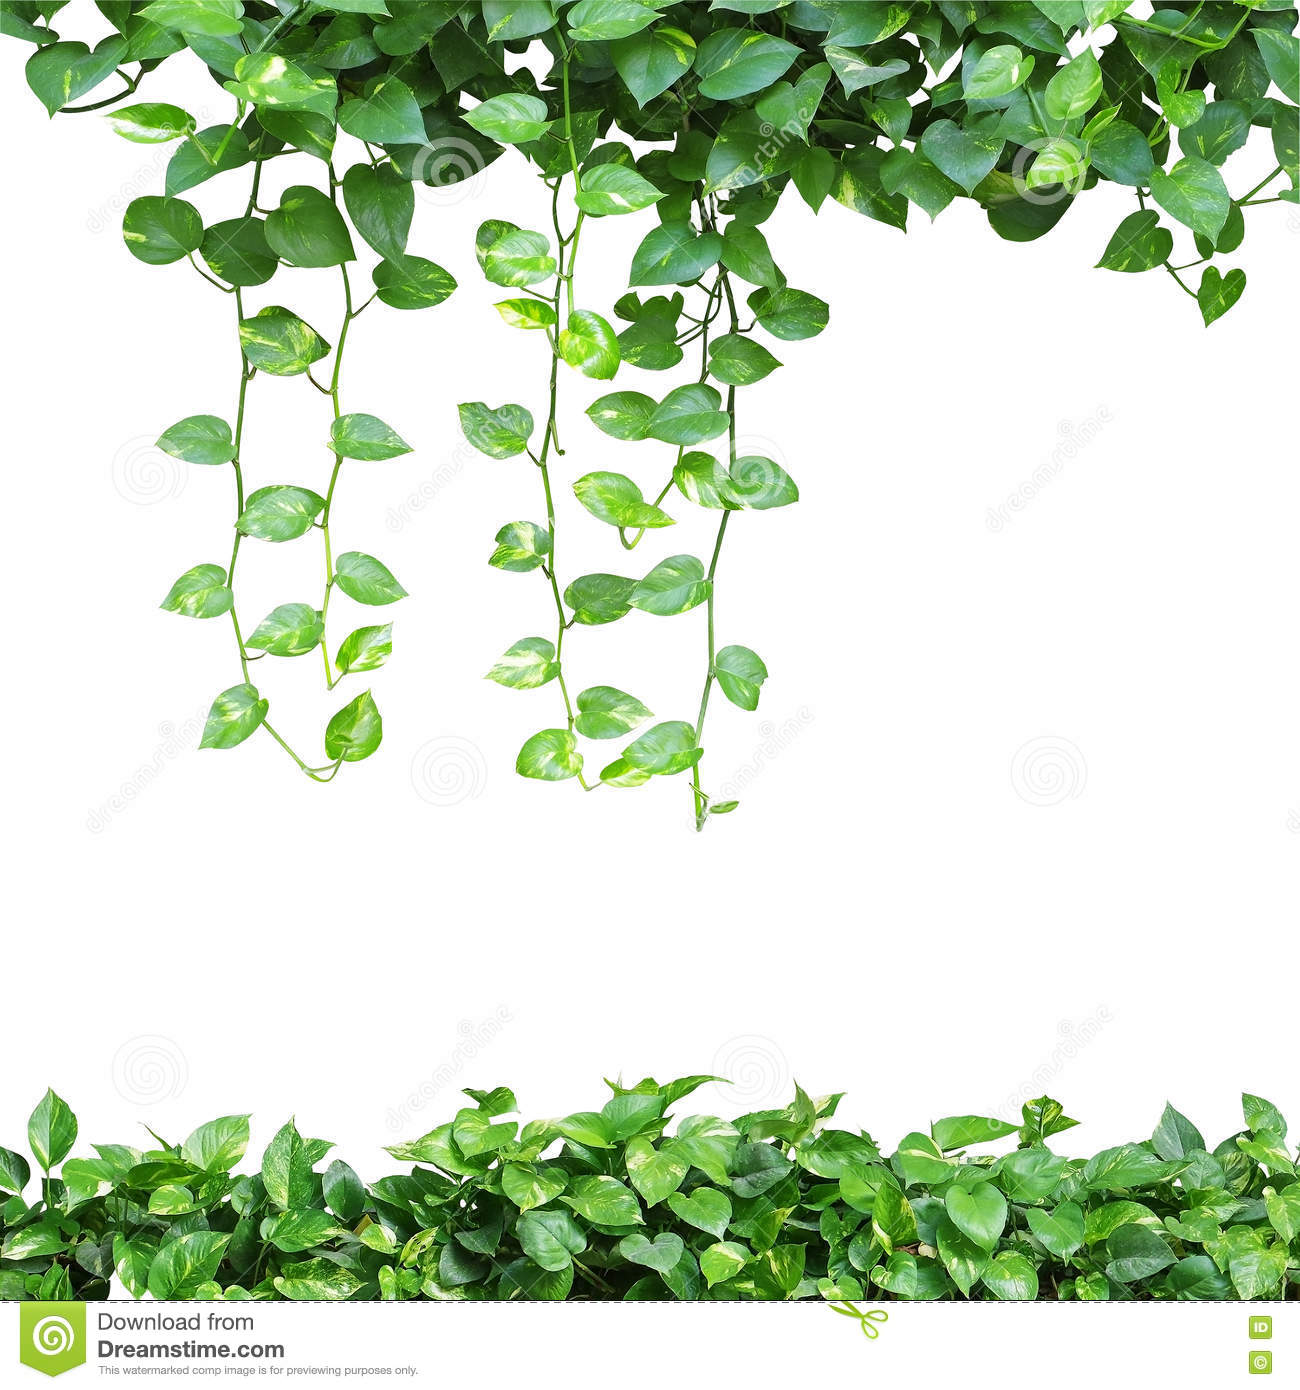 Heart shaped leaves vine devils ivy golden pothos isolated o heart shaped leaves vine devil s ivy golden pothos isolated o mightylinksfo